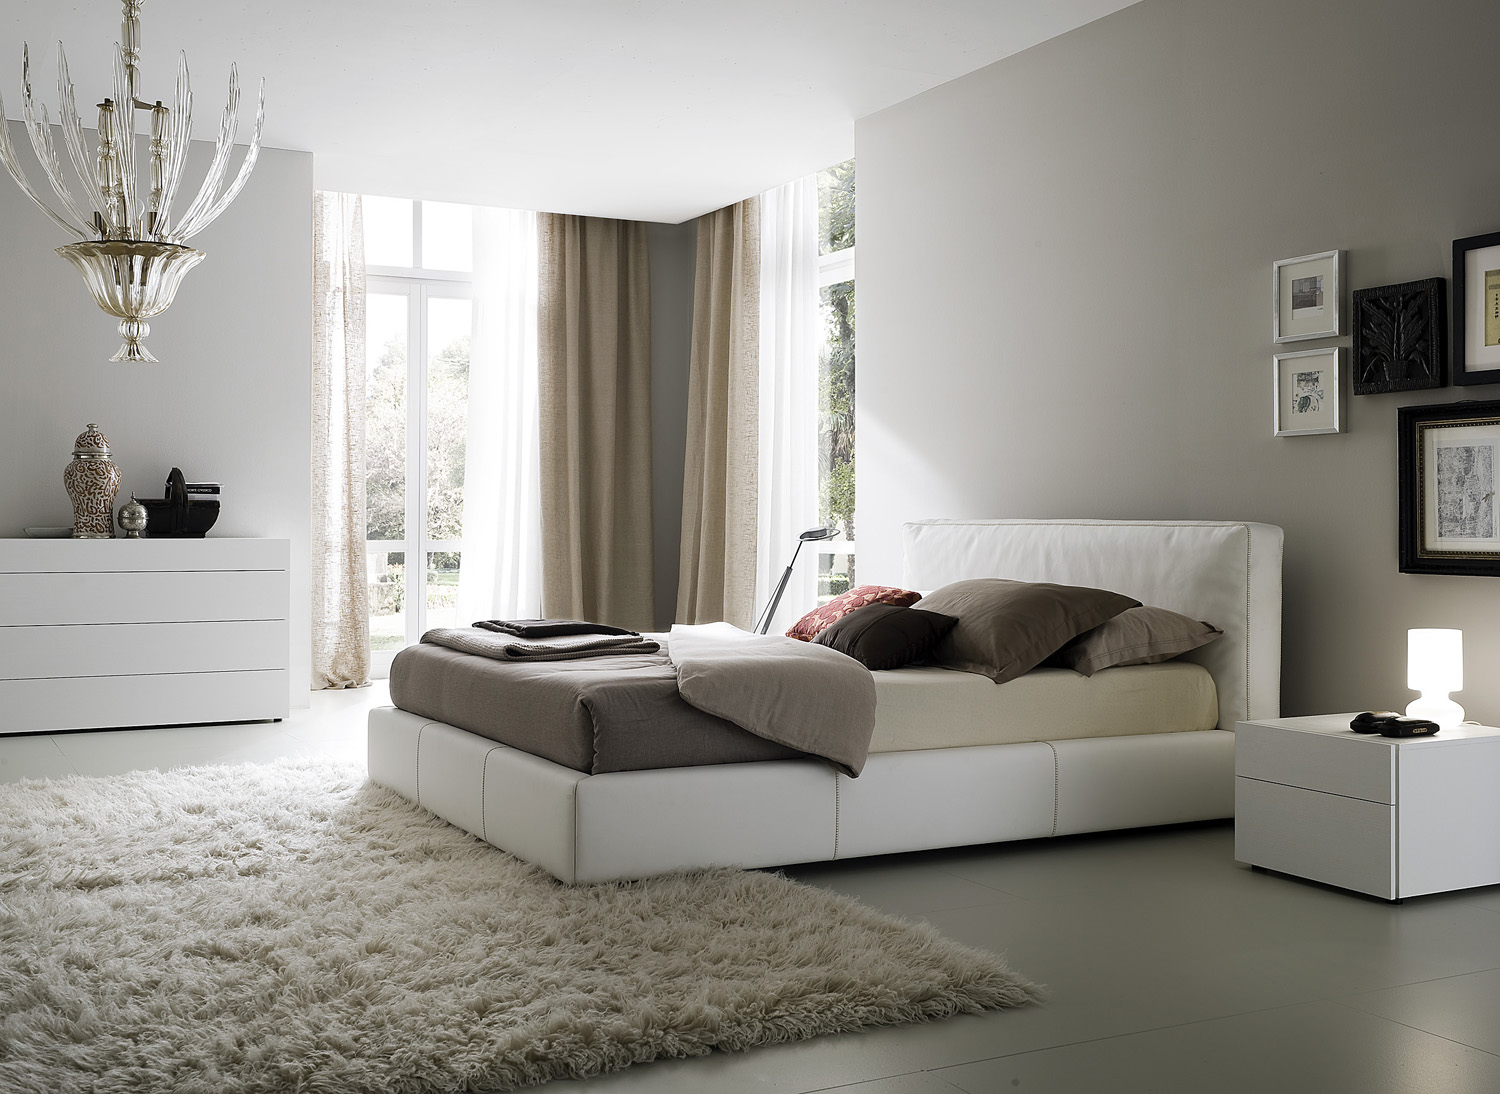 Bedroom decorating ideas from evinco for Bedroom decorations ideas